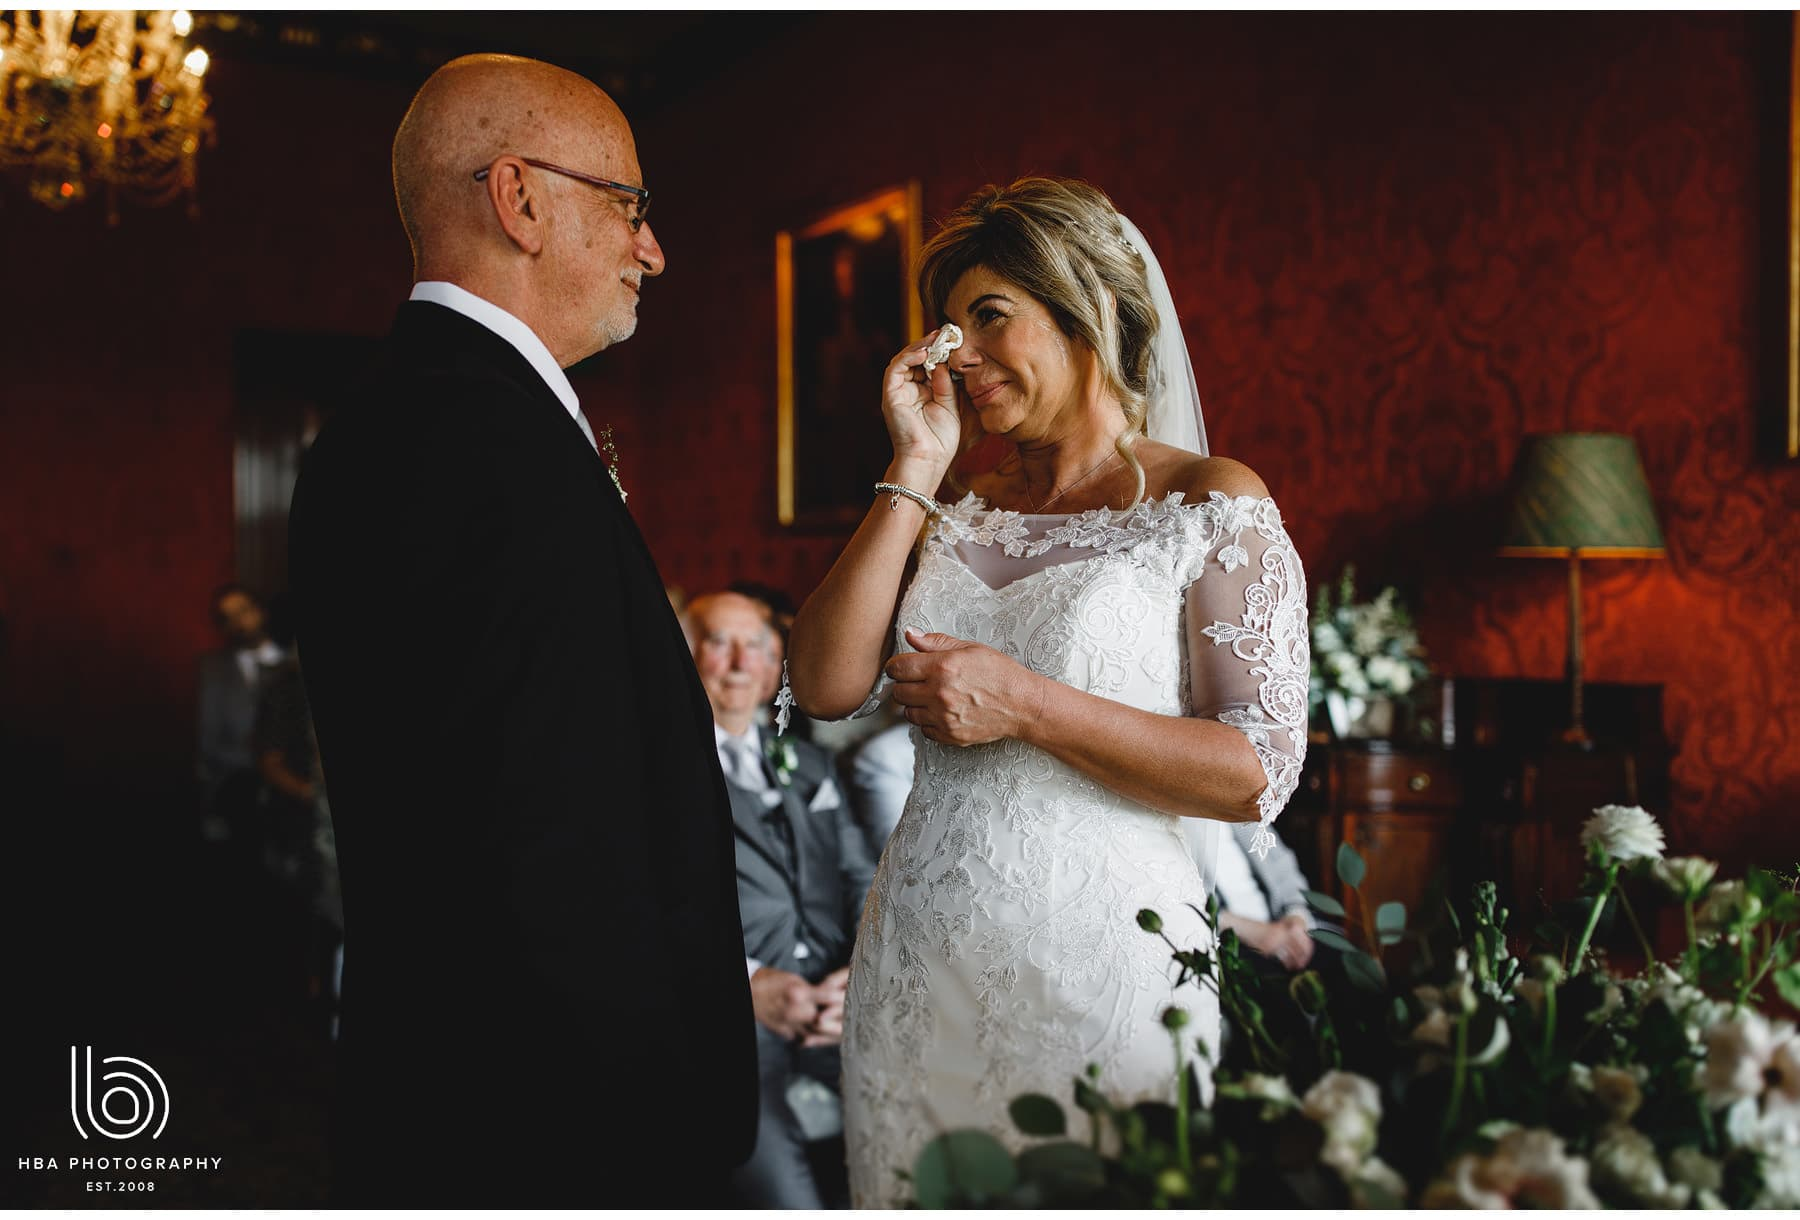 the bride wiping away tears during the ceremony